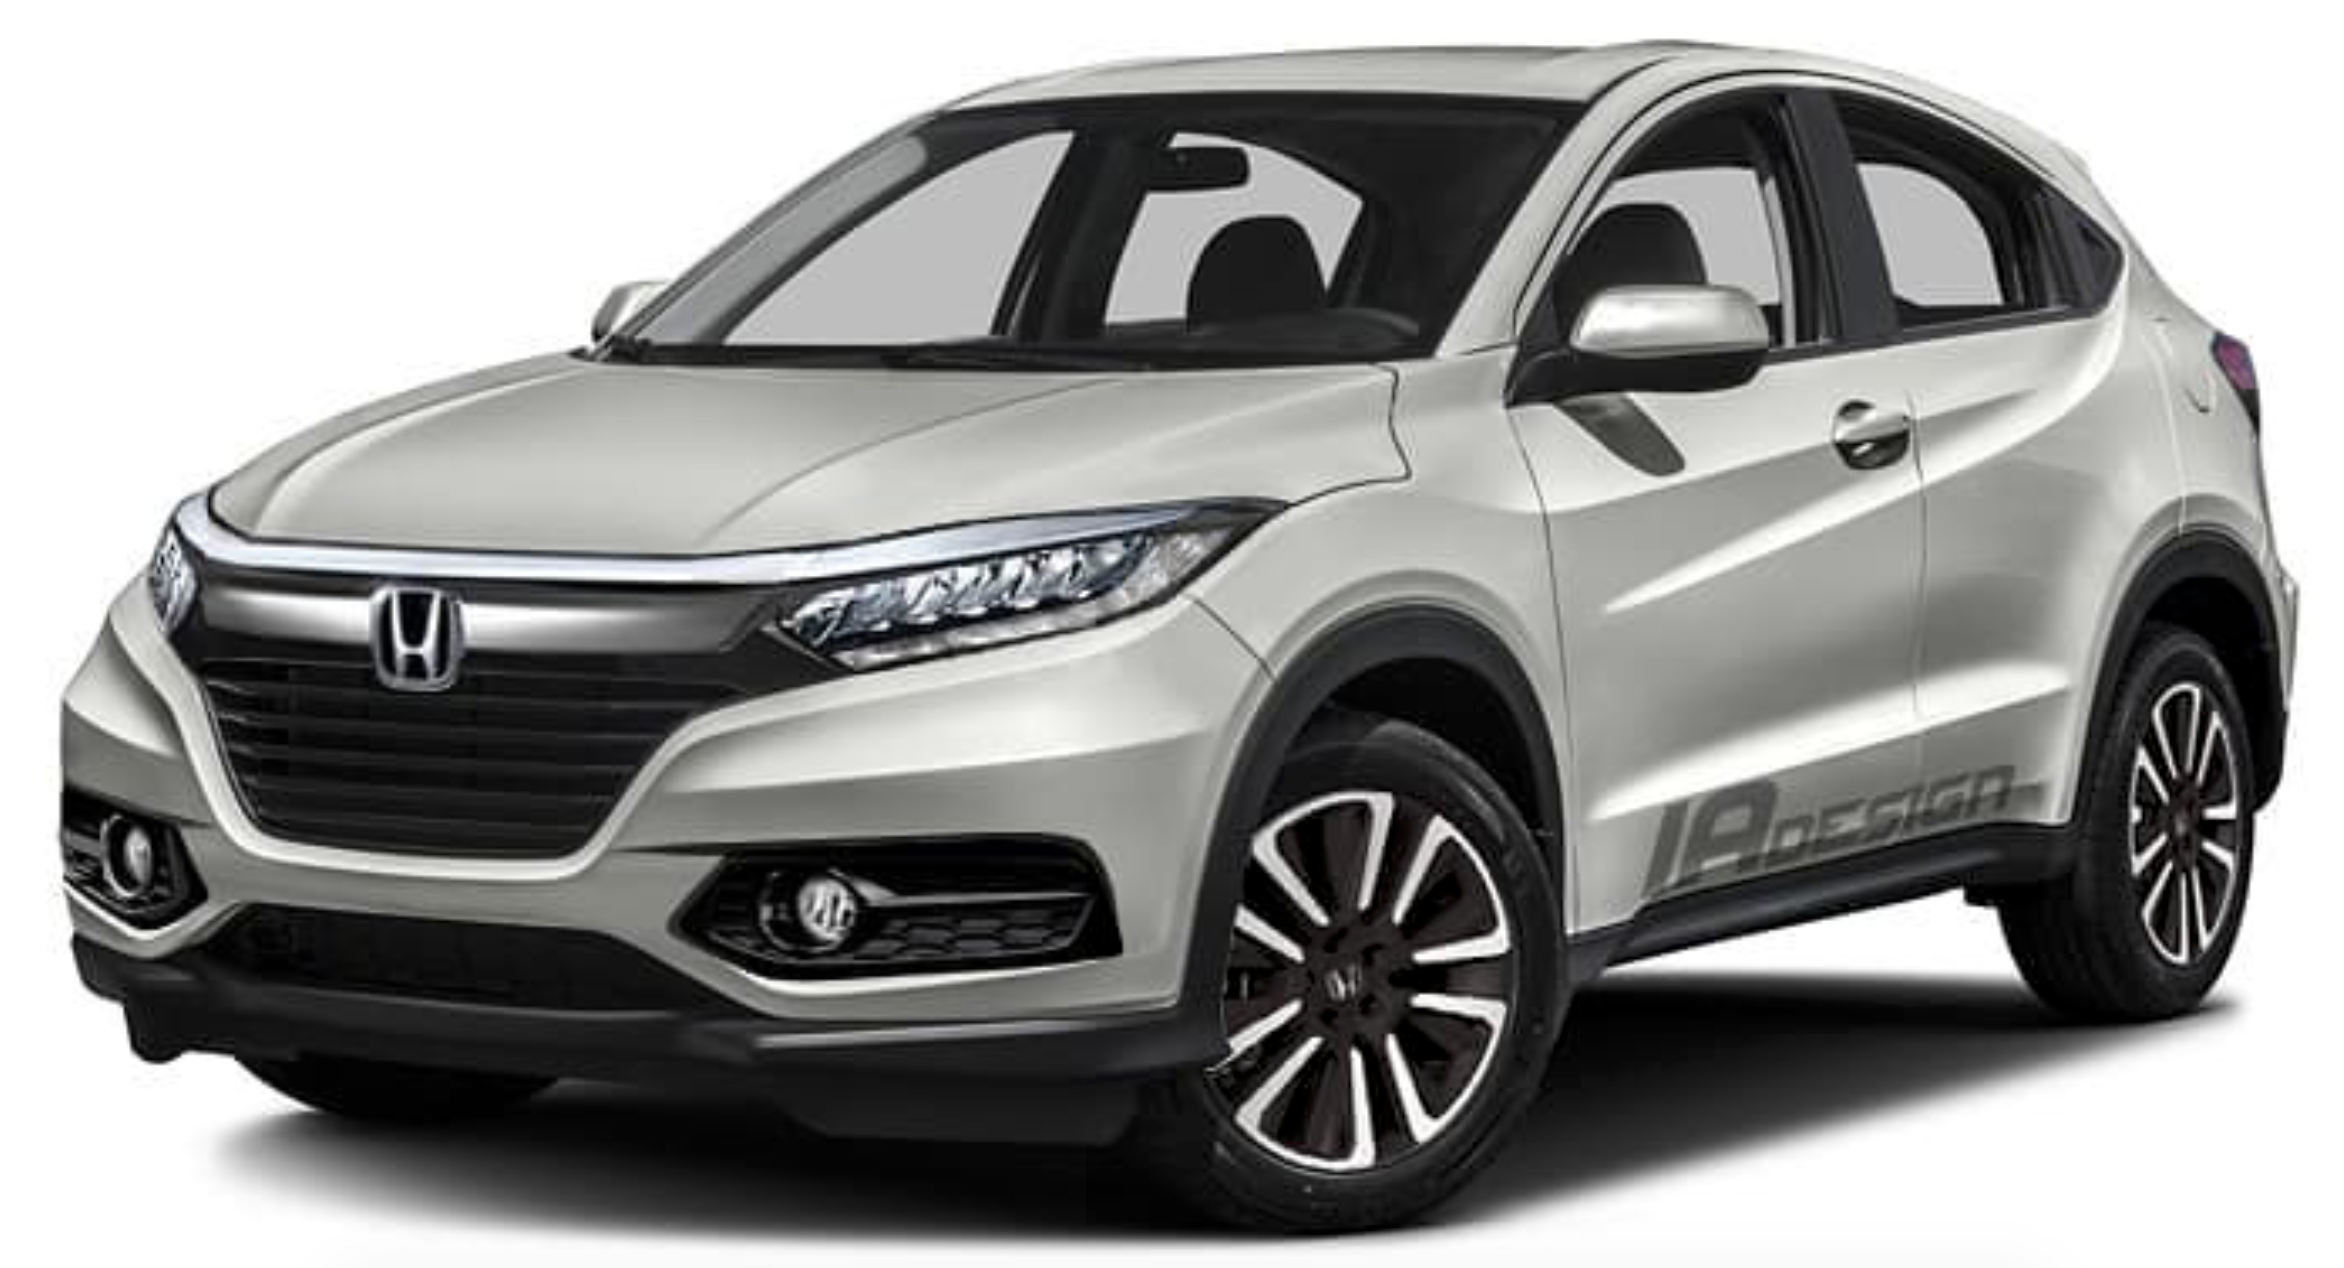 Honda hr v facelift rendered new led lights grille for Honda hrv lease